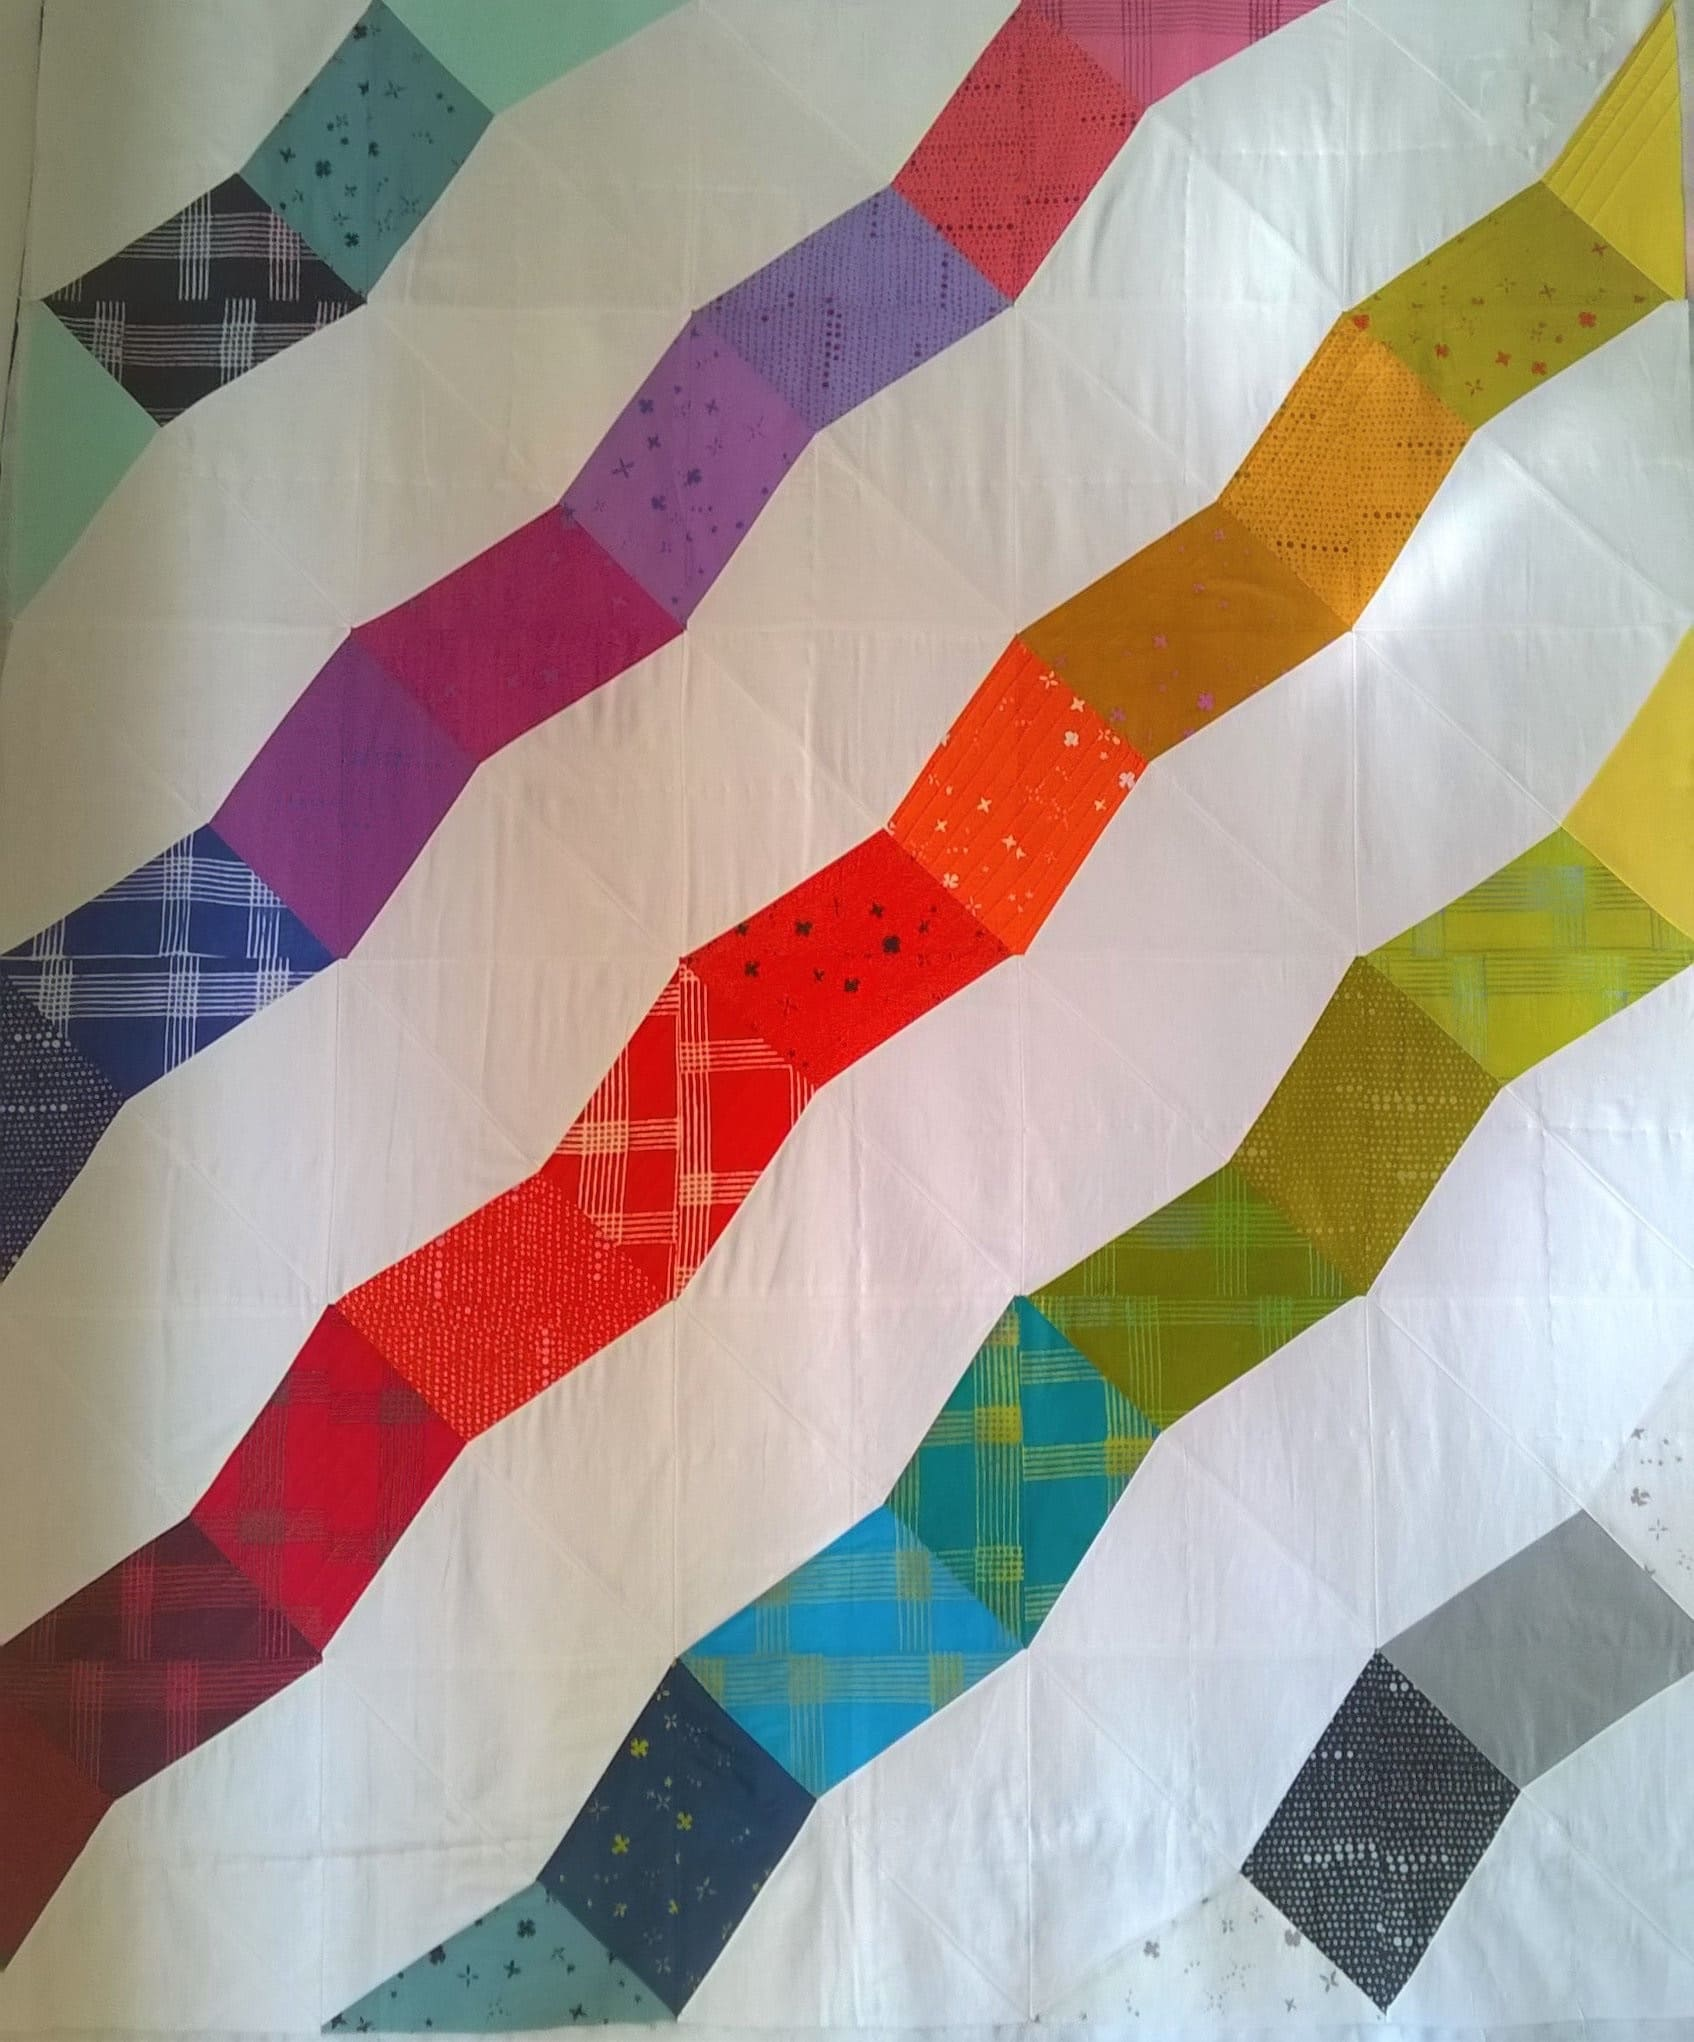 Rainbow Quilts in Italy